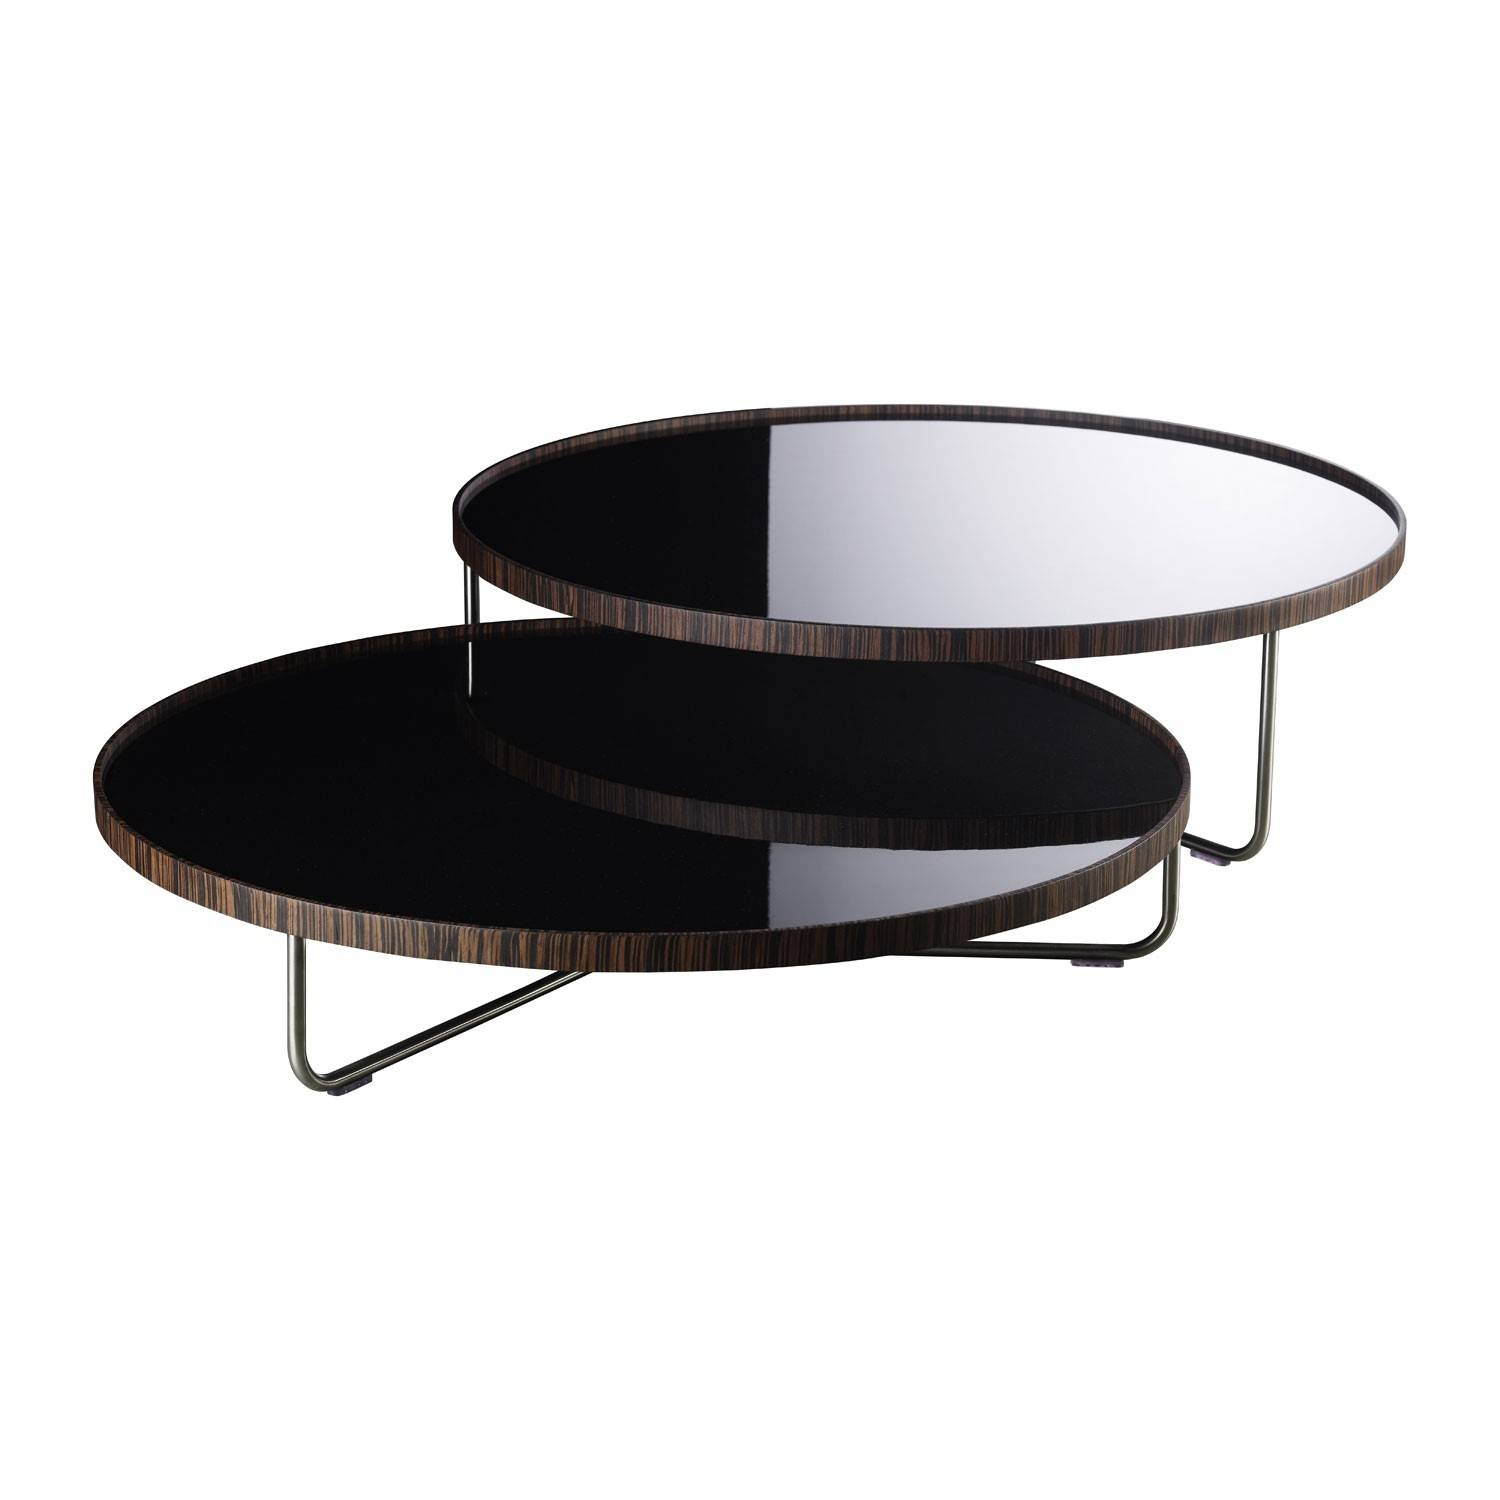 Furniture: Nesting Coffee Table With A Stylish Unique Contemporary with regard to Odd Shaped Coffee Tables (Image 22 of 30)